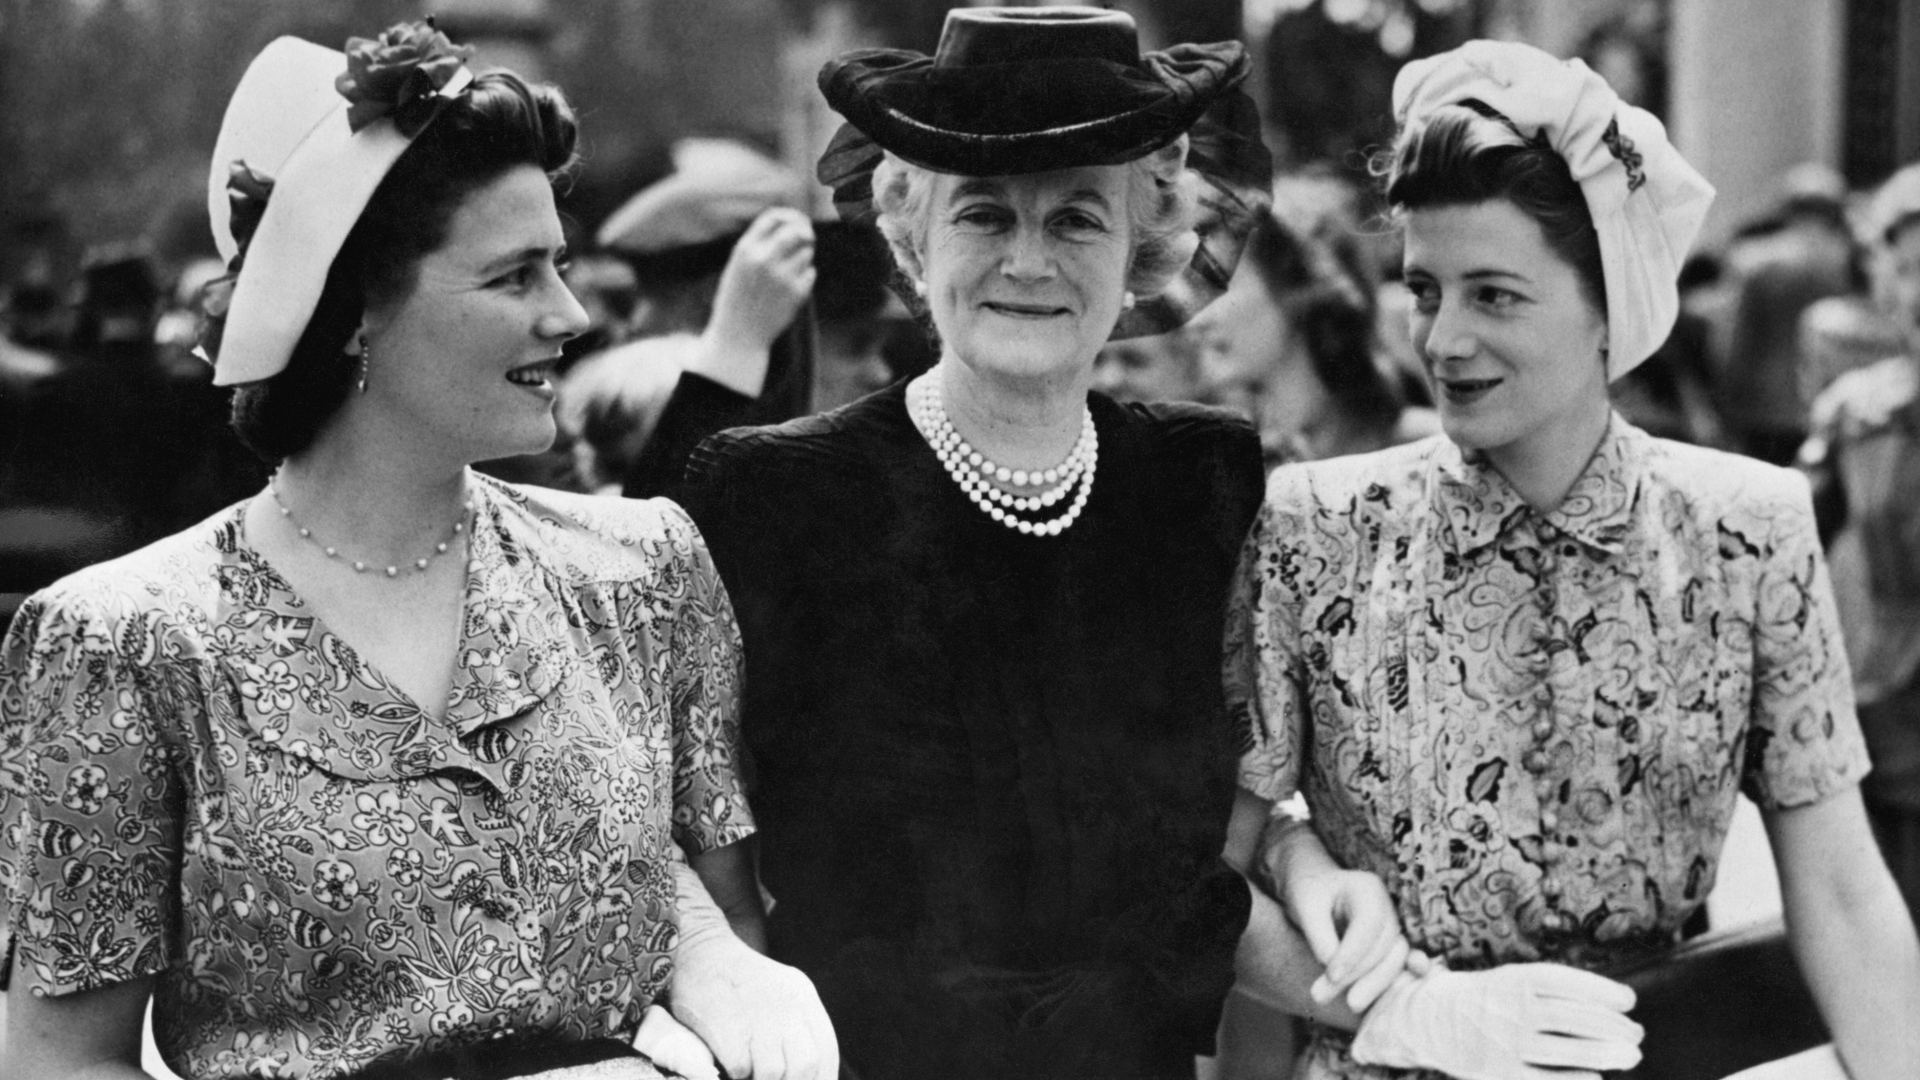 Mrs. Winston Churchill, with her daughters Mary and Sarah, after her investiture by the Queen at Buckingham Palace, where she became a Dame of the British Empire, 1946. (Credit: Hulton-Deutsch Collection/CORBIS/Corbis via Getty Images)